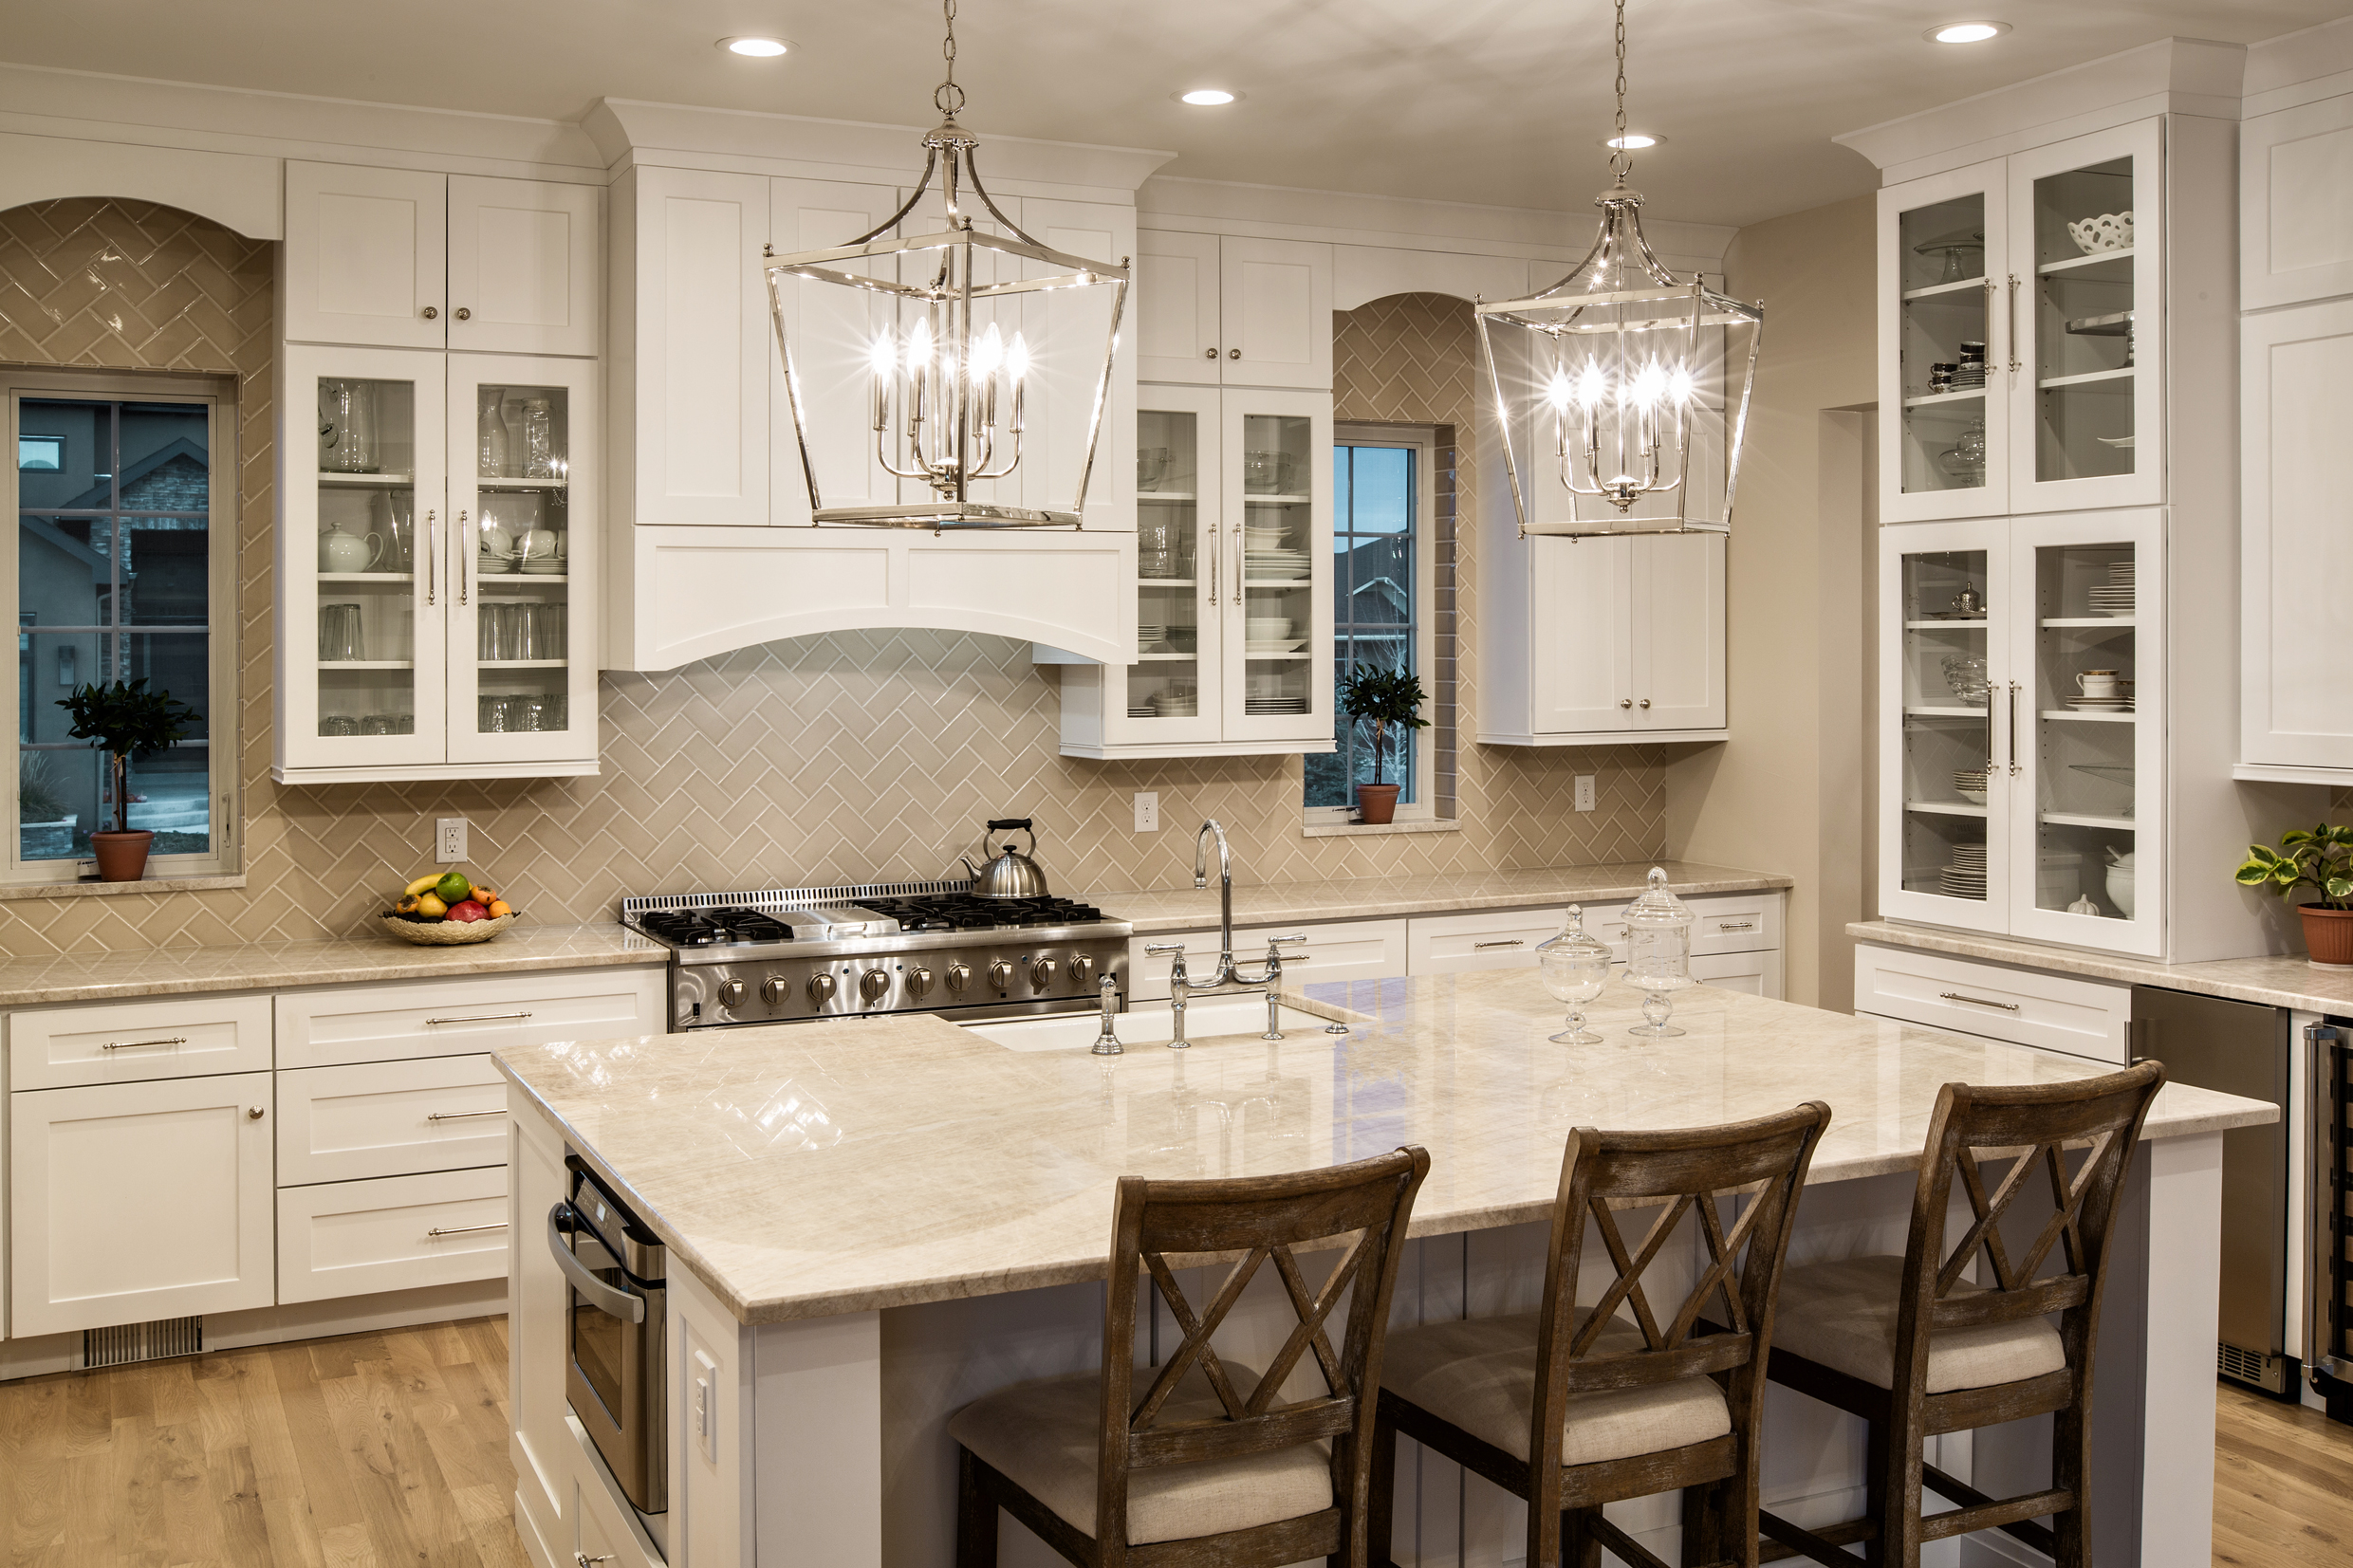 Taj Mahal quartzite kitchen countertops by YK stone center in denver